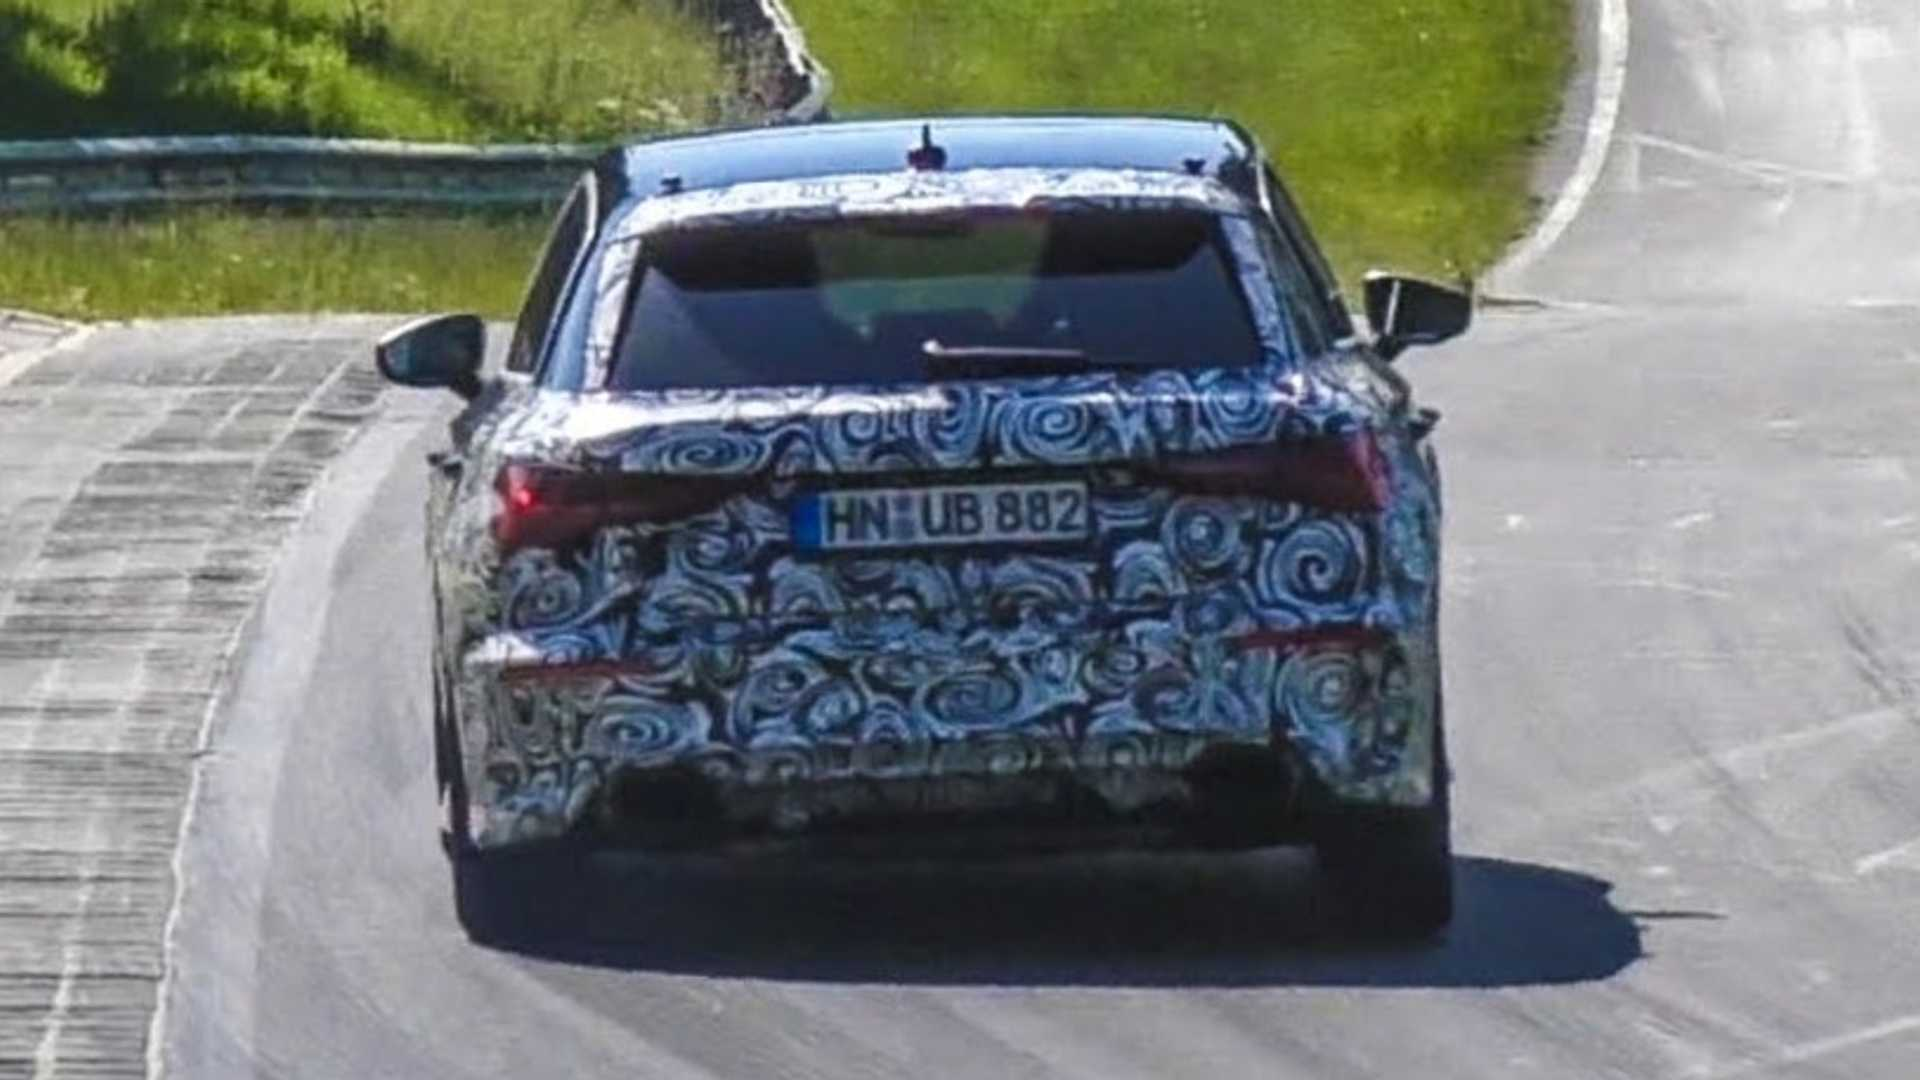 2021 Audi RS3 Spied With Angrier Exhaust Note, Could Have 415 HP - Motor1